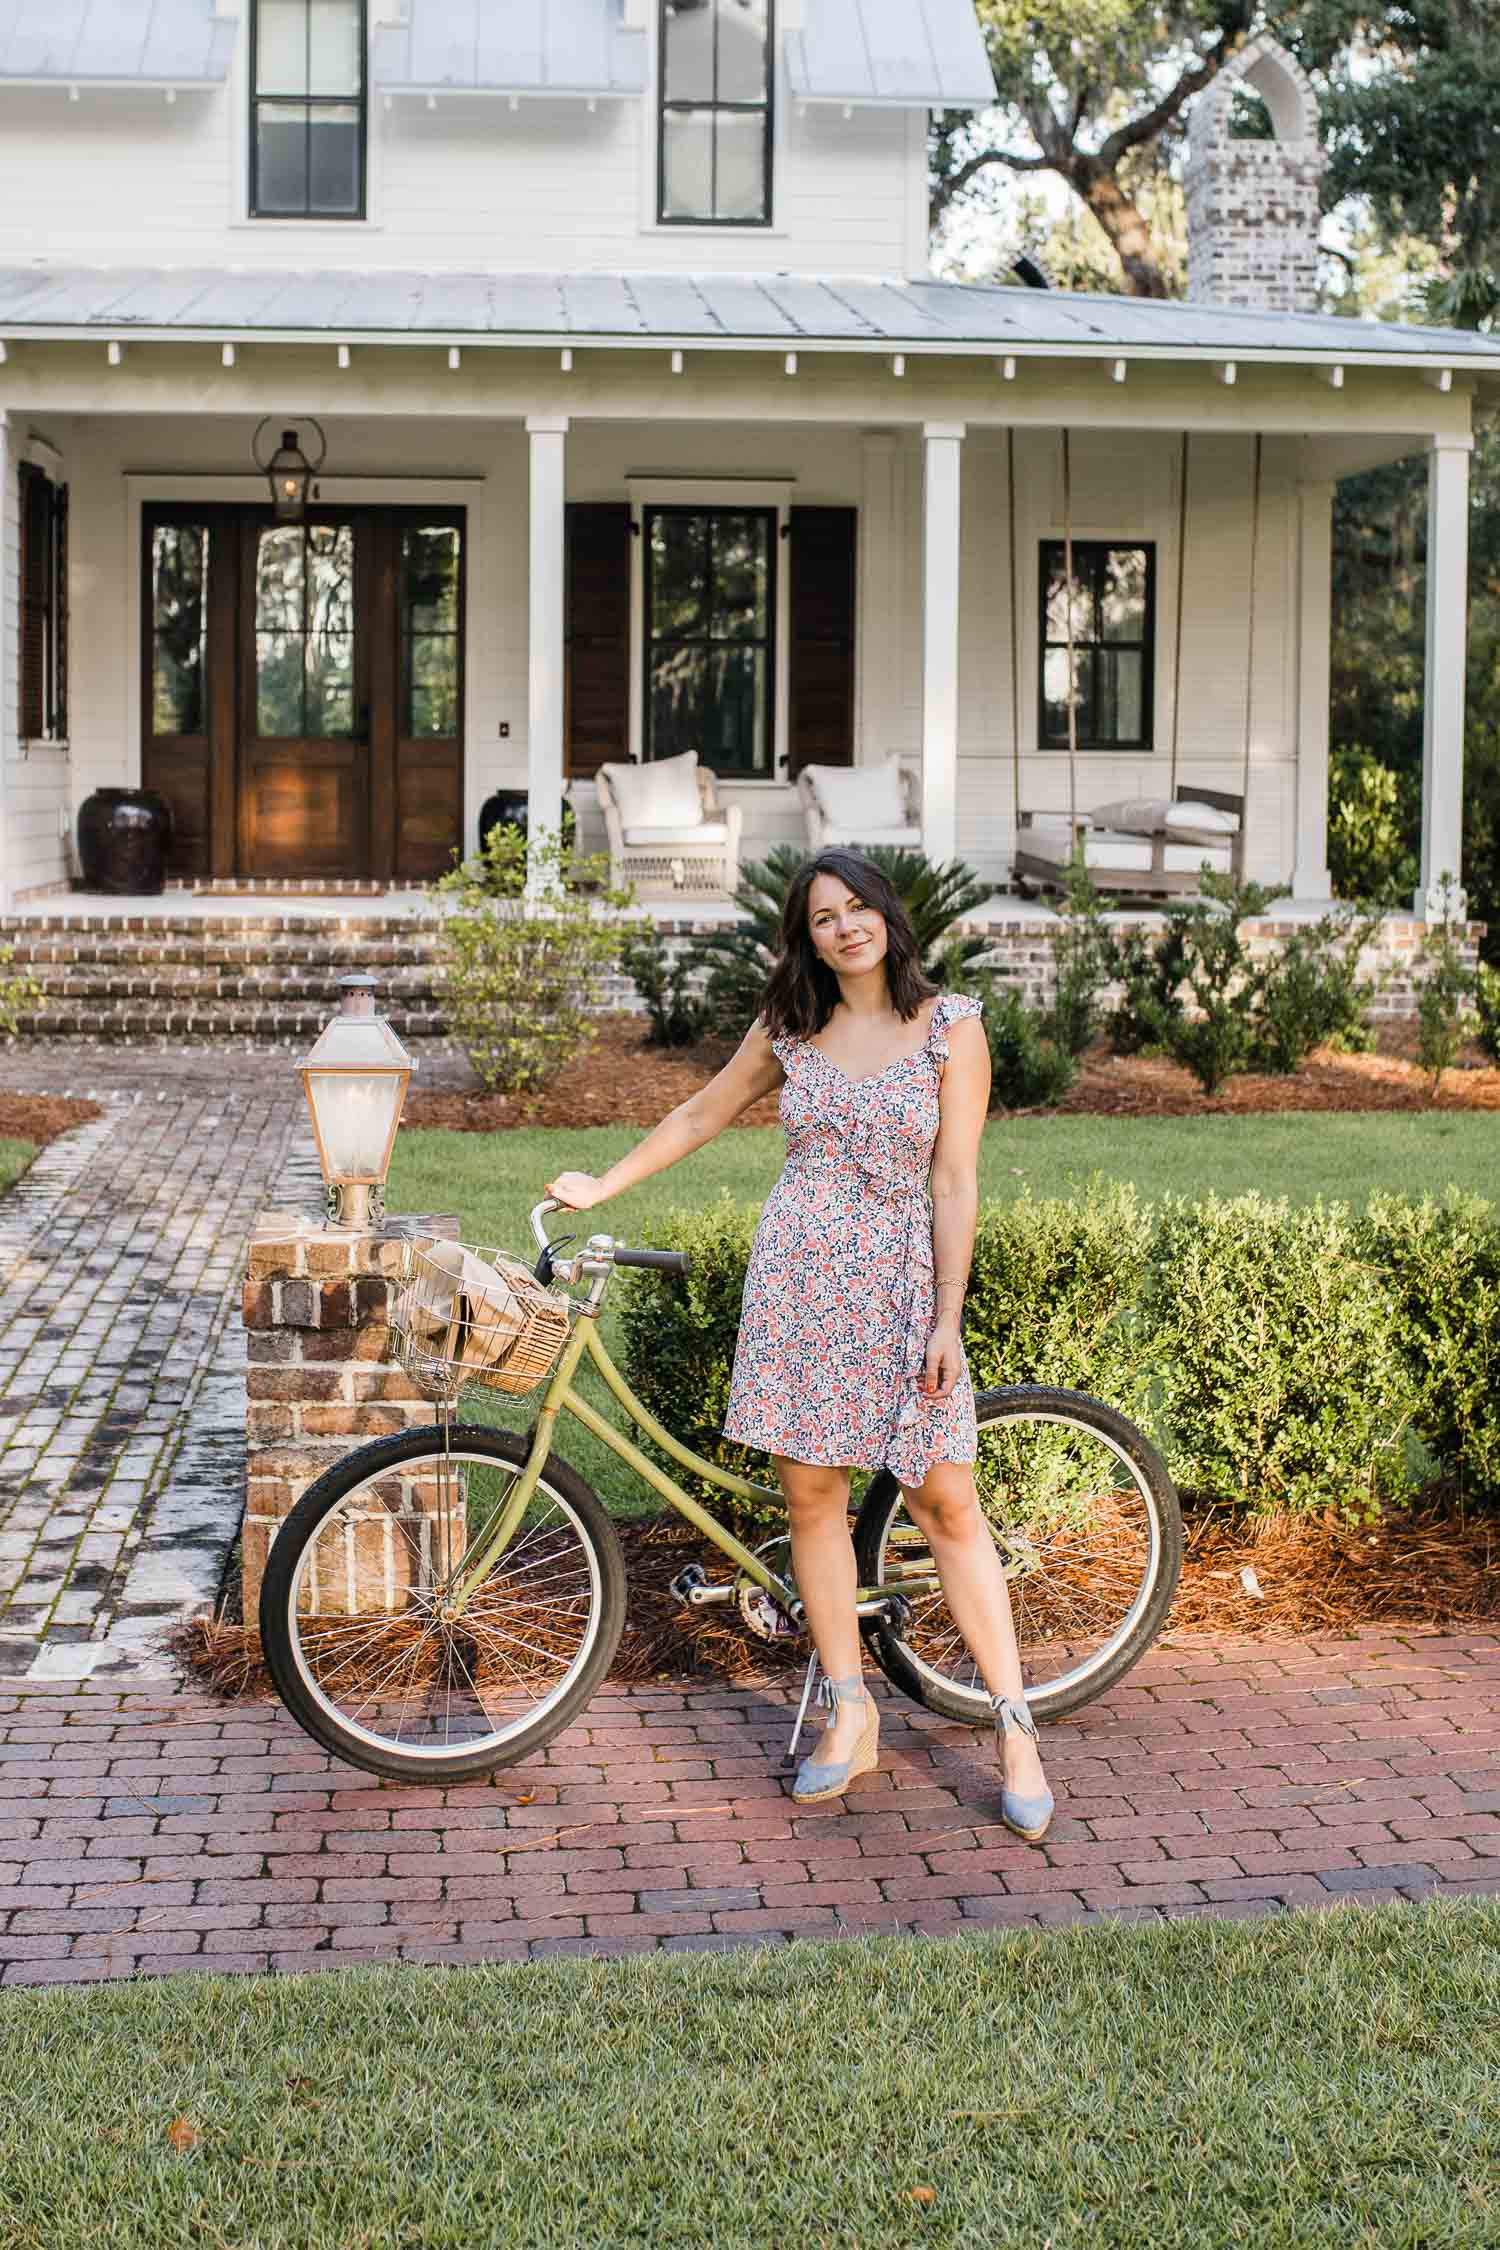 Jessica Camerata's outfit details: 1 State Floral Mini Dress, Castaner Espadrilles, Cult Gaia Bag, Madewell Gold Hoop Earrings